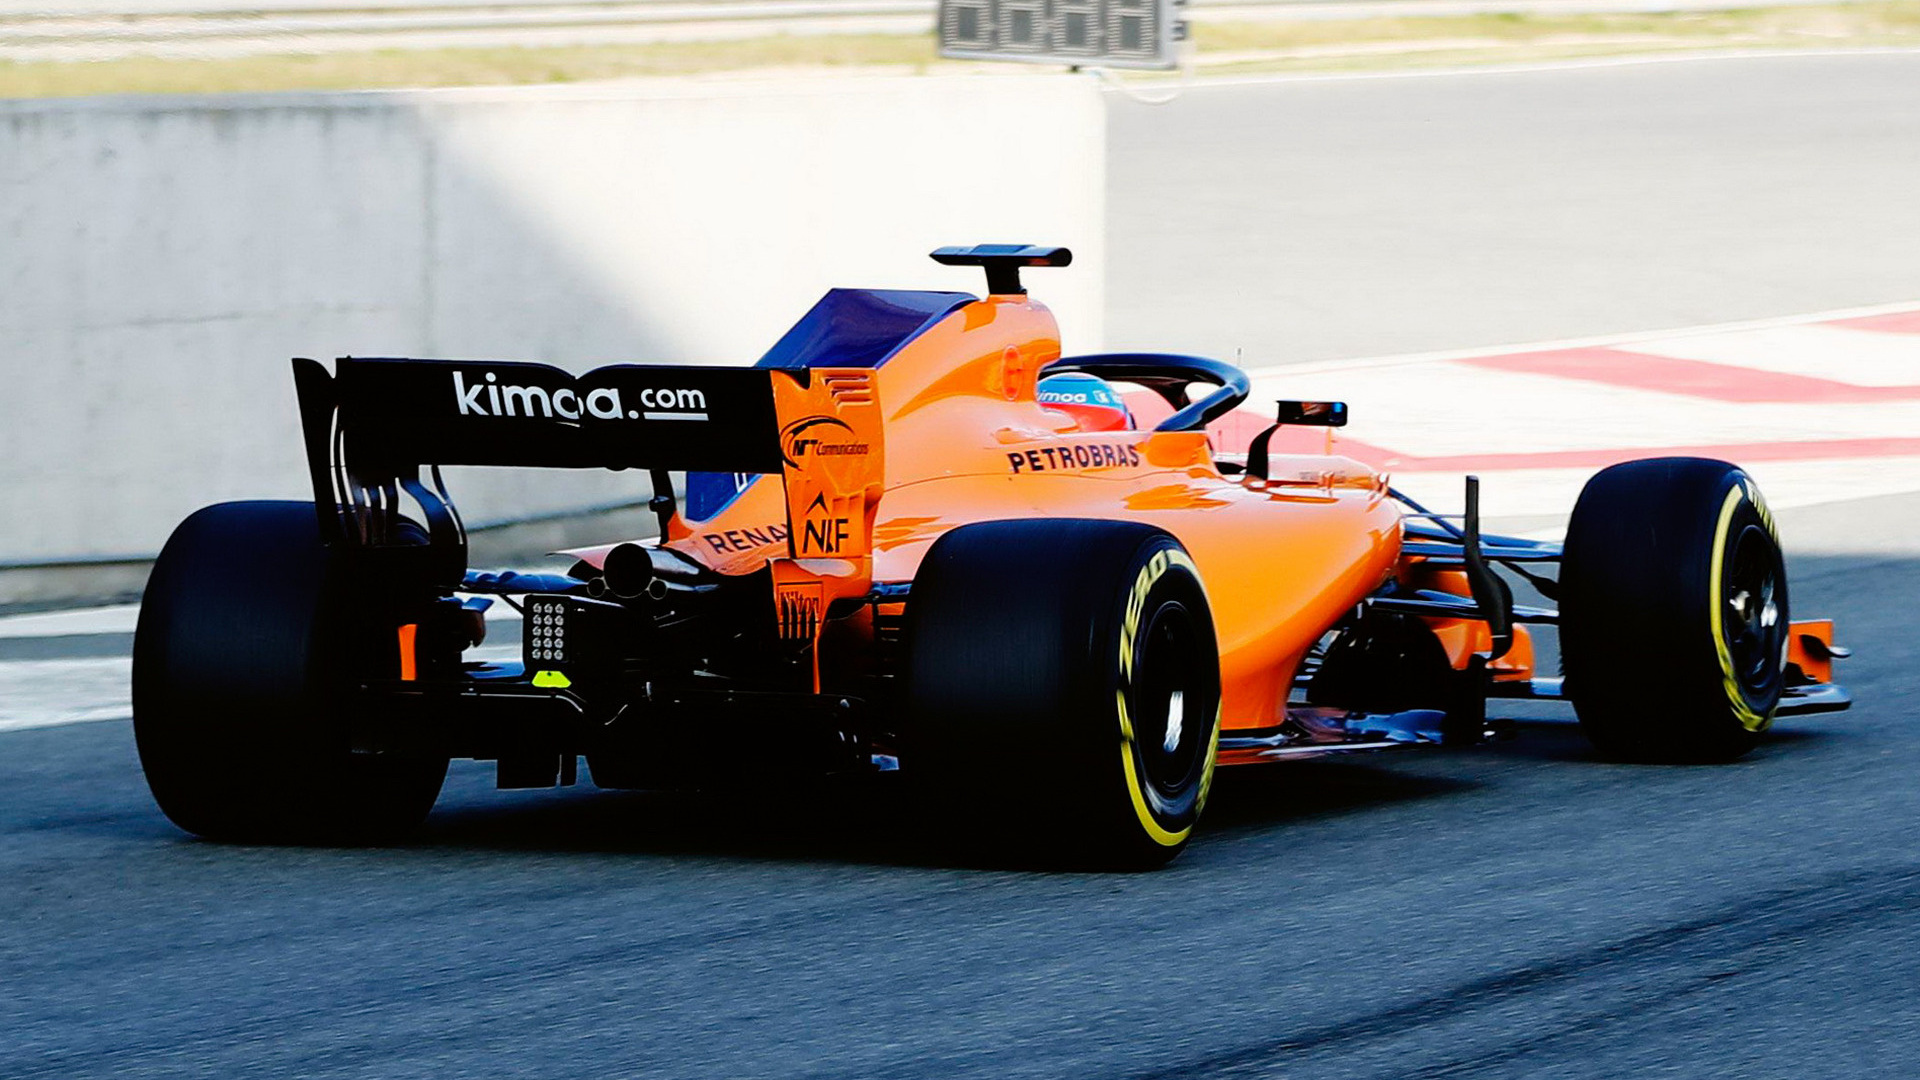 2018 McLaren MCL33 - Wallpapers and HD Images | Car Pixel